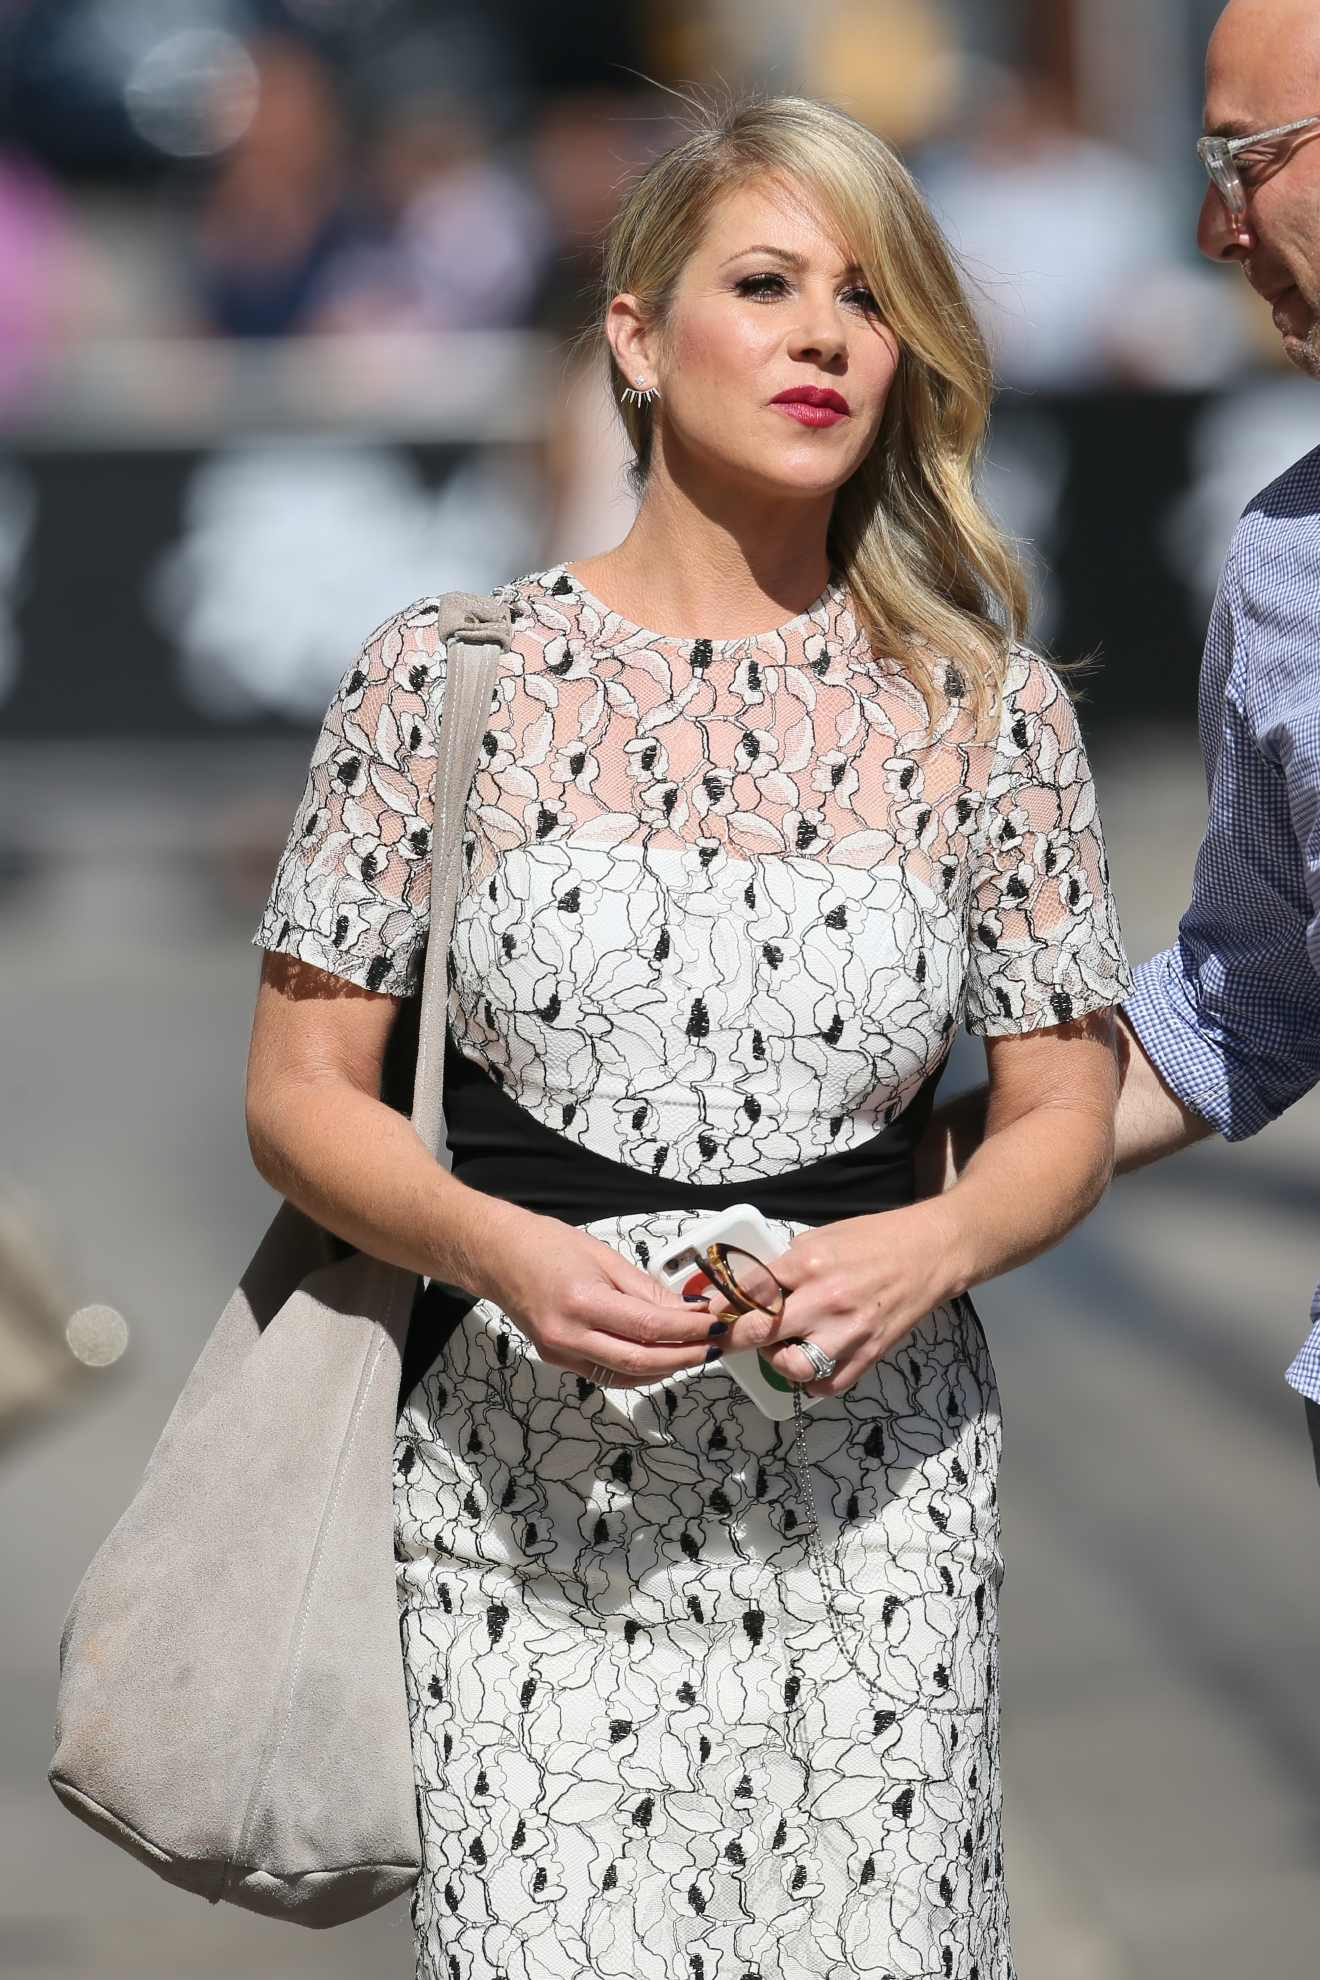 Christina Applegate seen arriving at ABC studios for Jimmy Kimmel Live                                    Featuring: Christina Applegate                  Where: Los Angeles, California, United States                  When: 30 Jul 2015                  Credit: Michael Wright/WENN.com